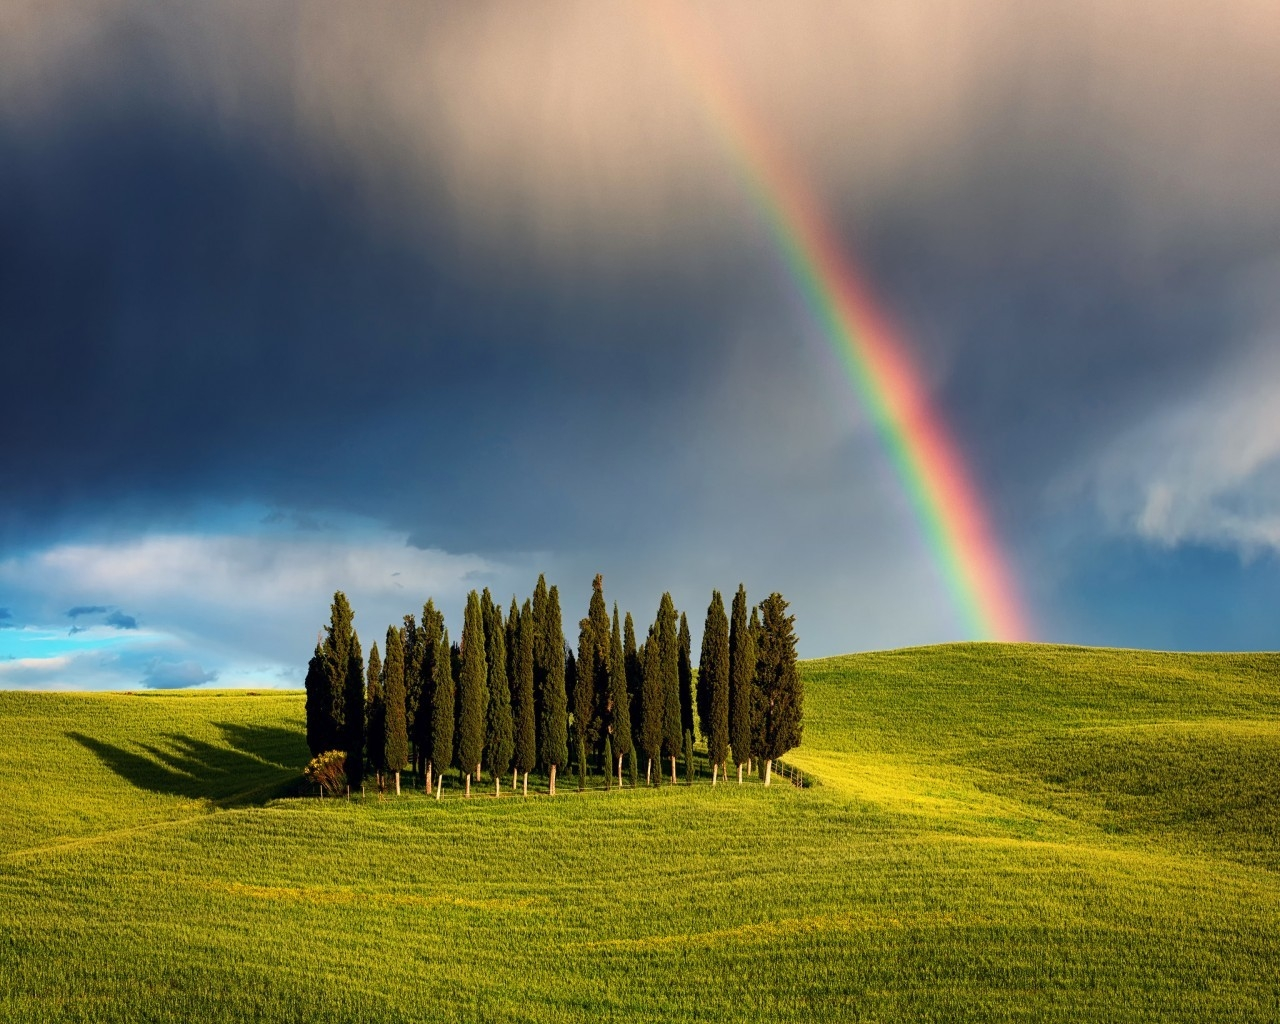 Rainbow in Tuscany for 1280 x 1024 resolution